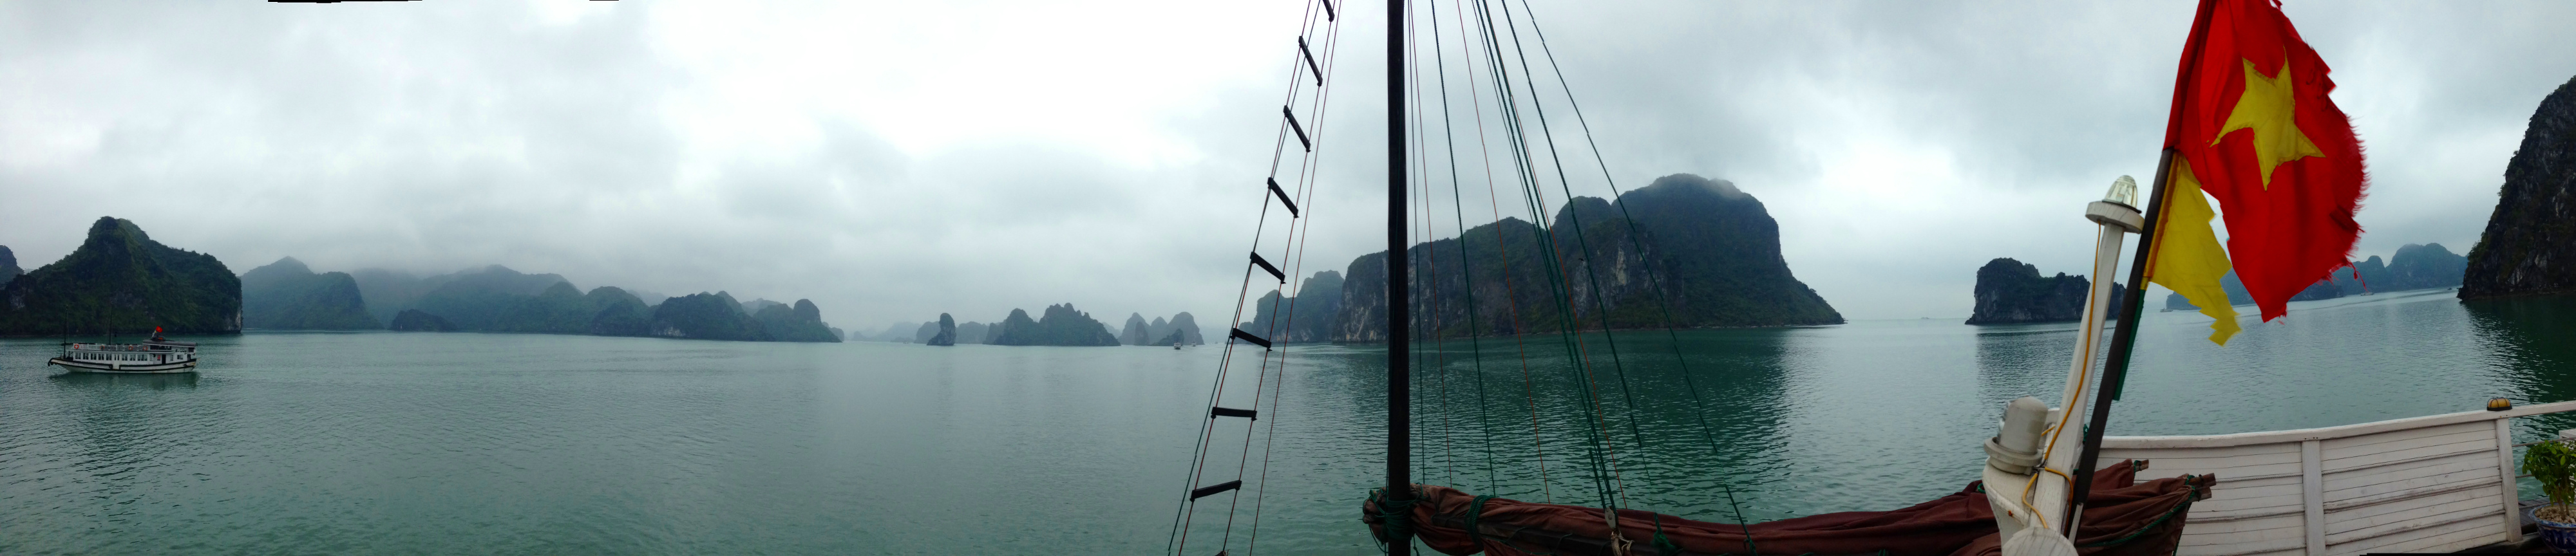 Halong Bay Vietnam Panoramic